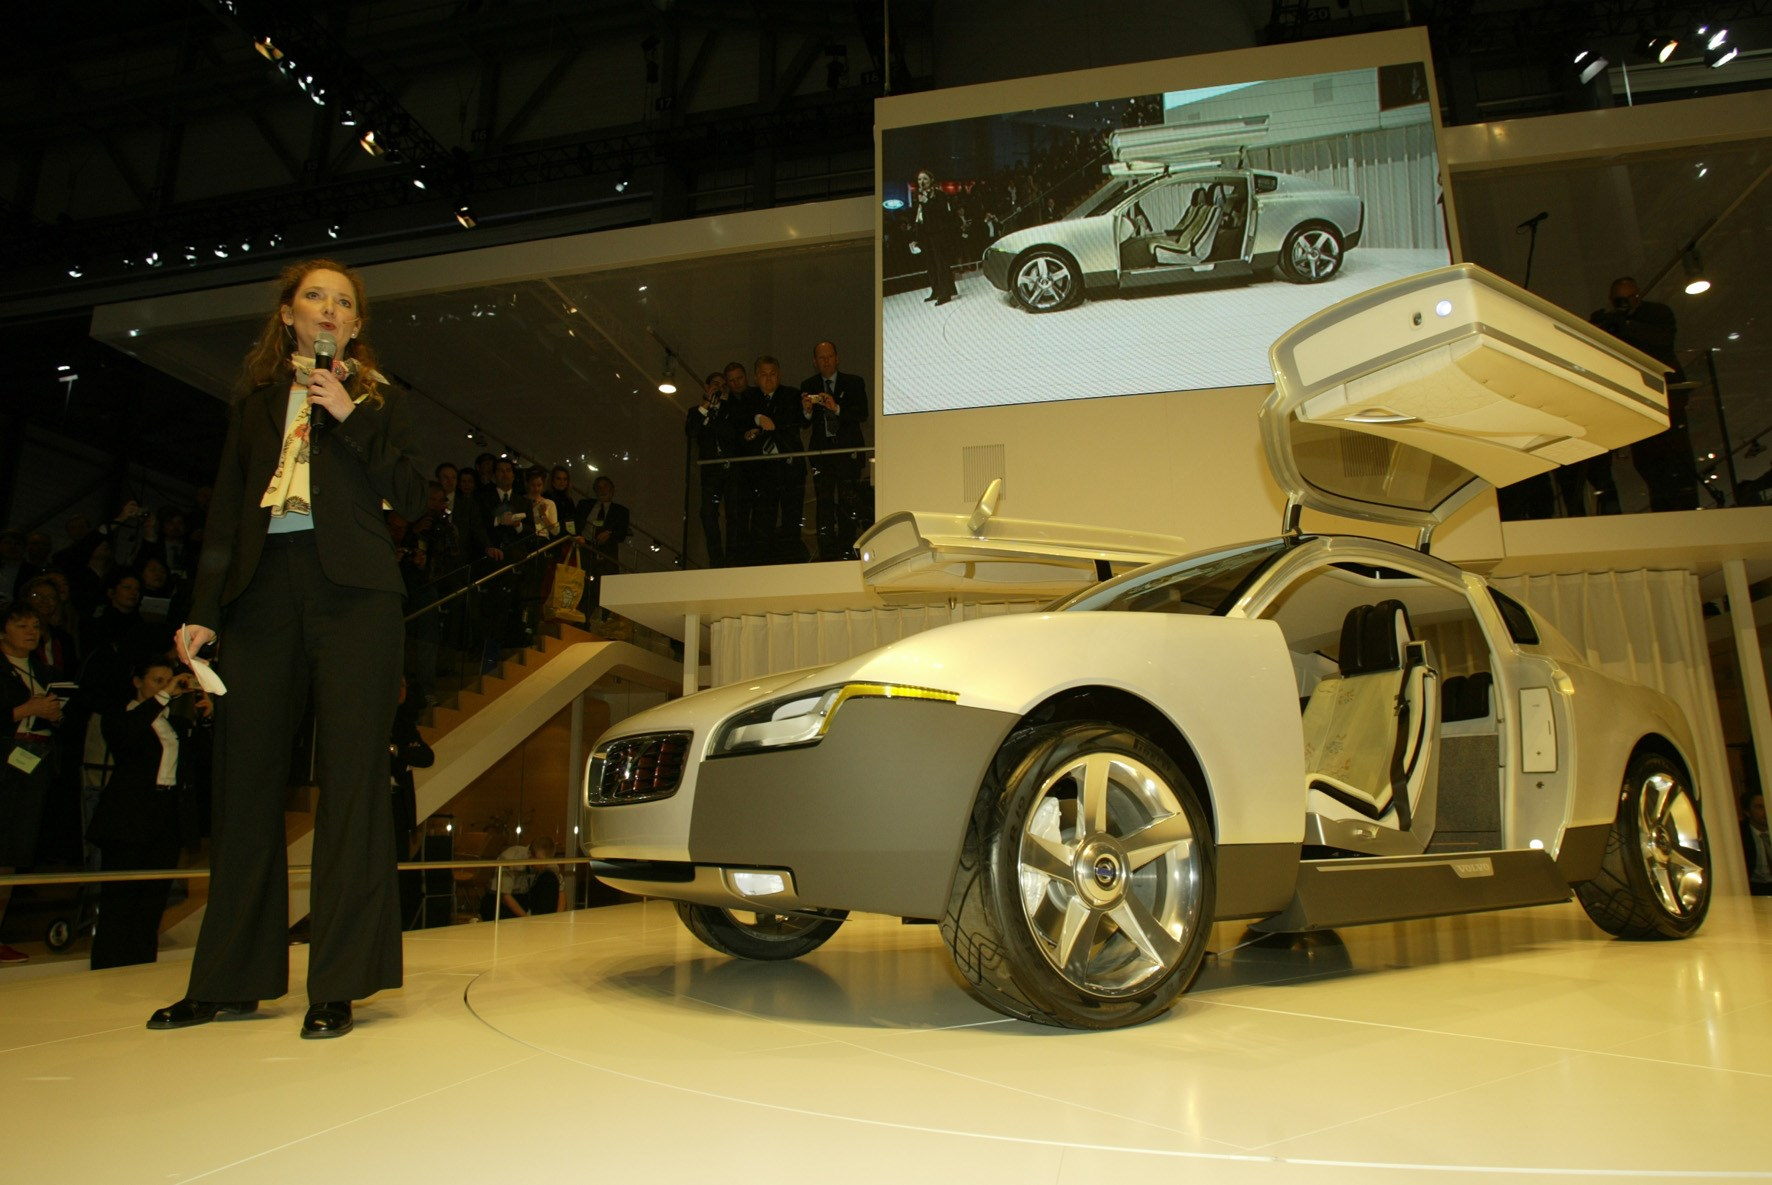 8340_Volvo_launch_the_new_Volvo_YCC_concept_car_at_the_Geneva_Motor_Show